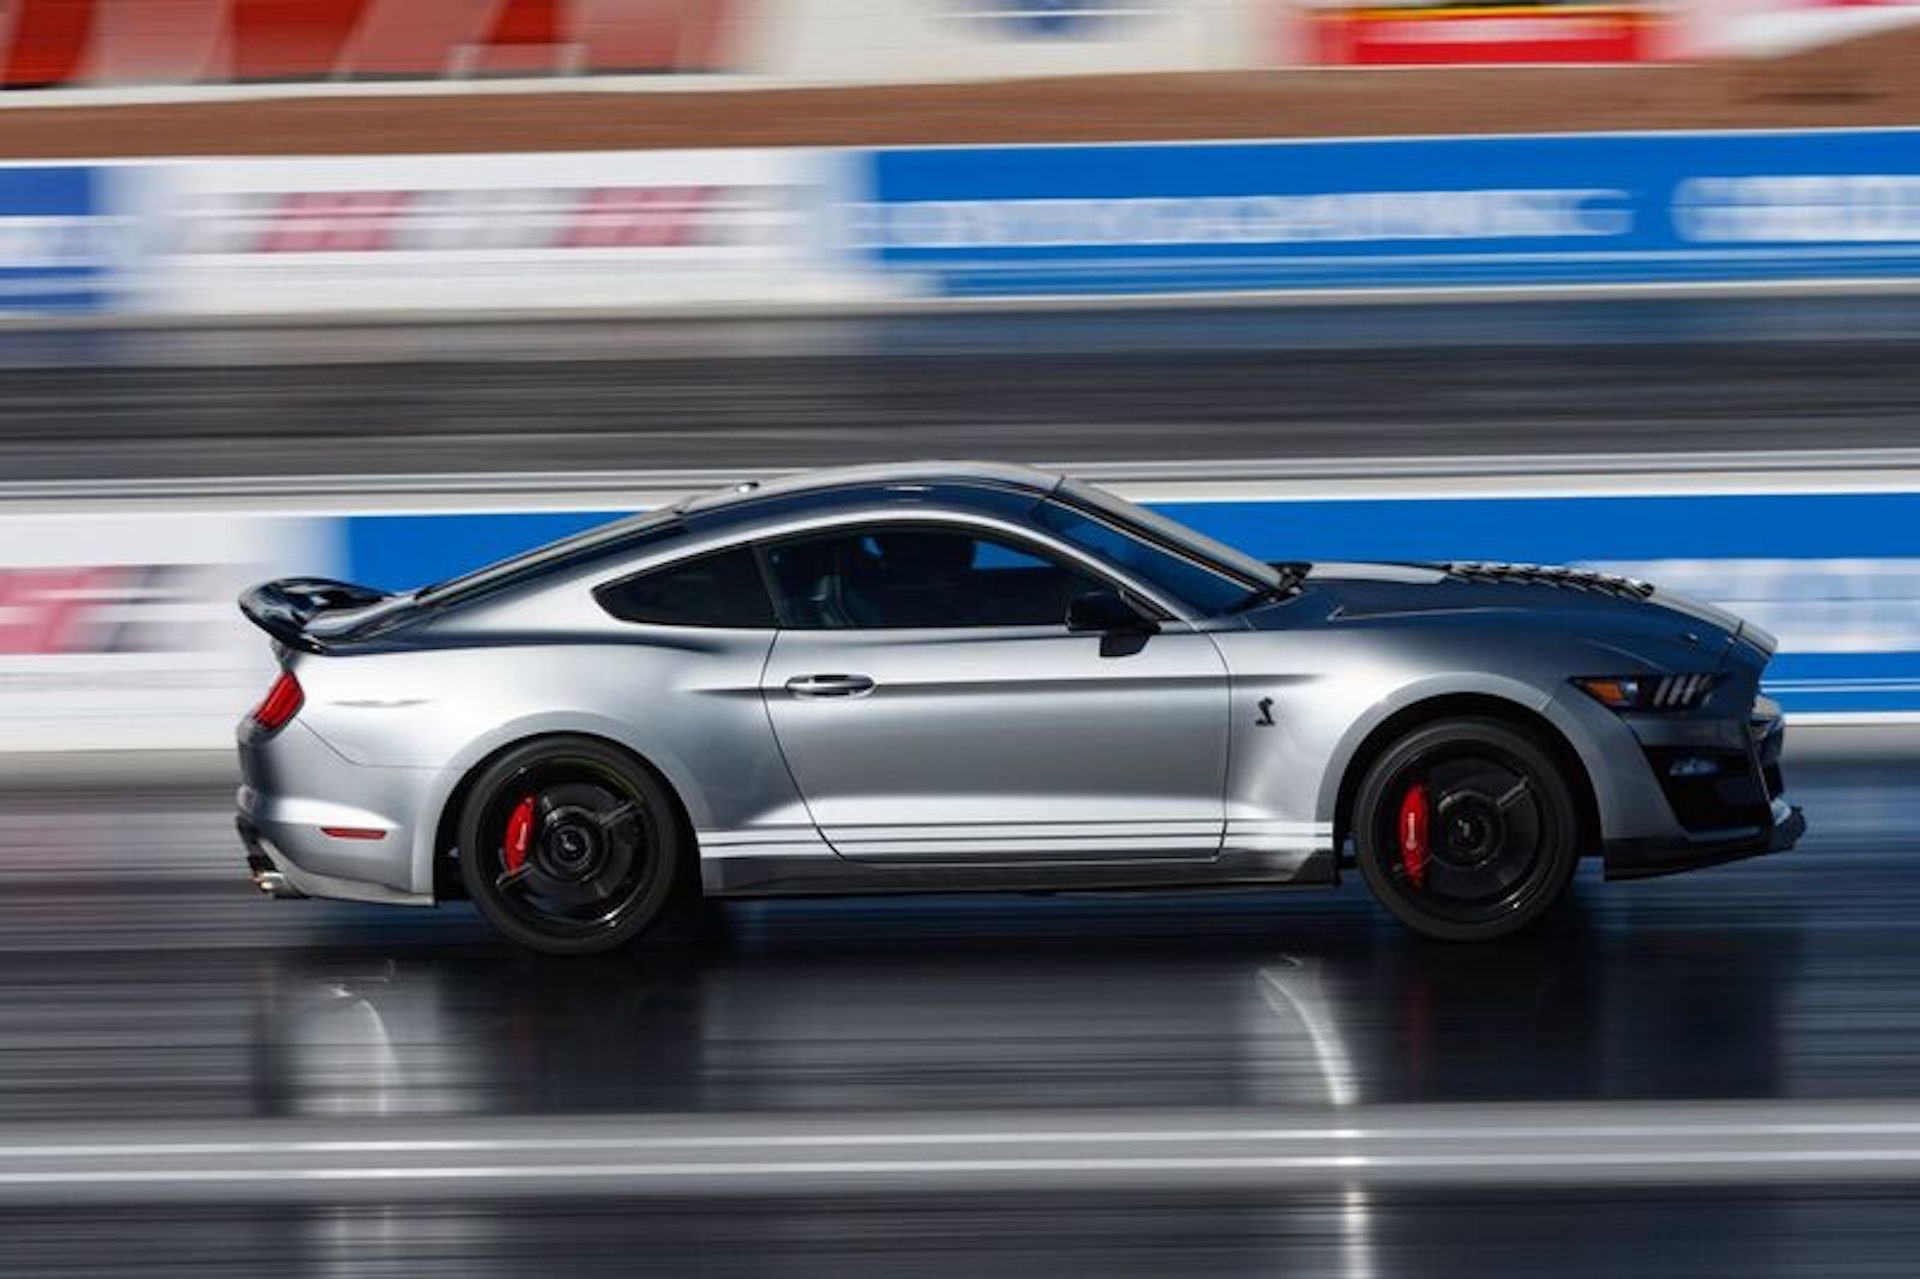 Next Ford Mustang coming in 5 as 5 model, job ad confirms